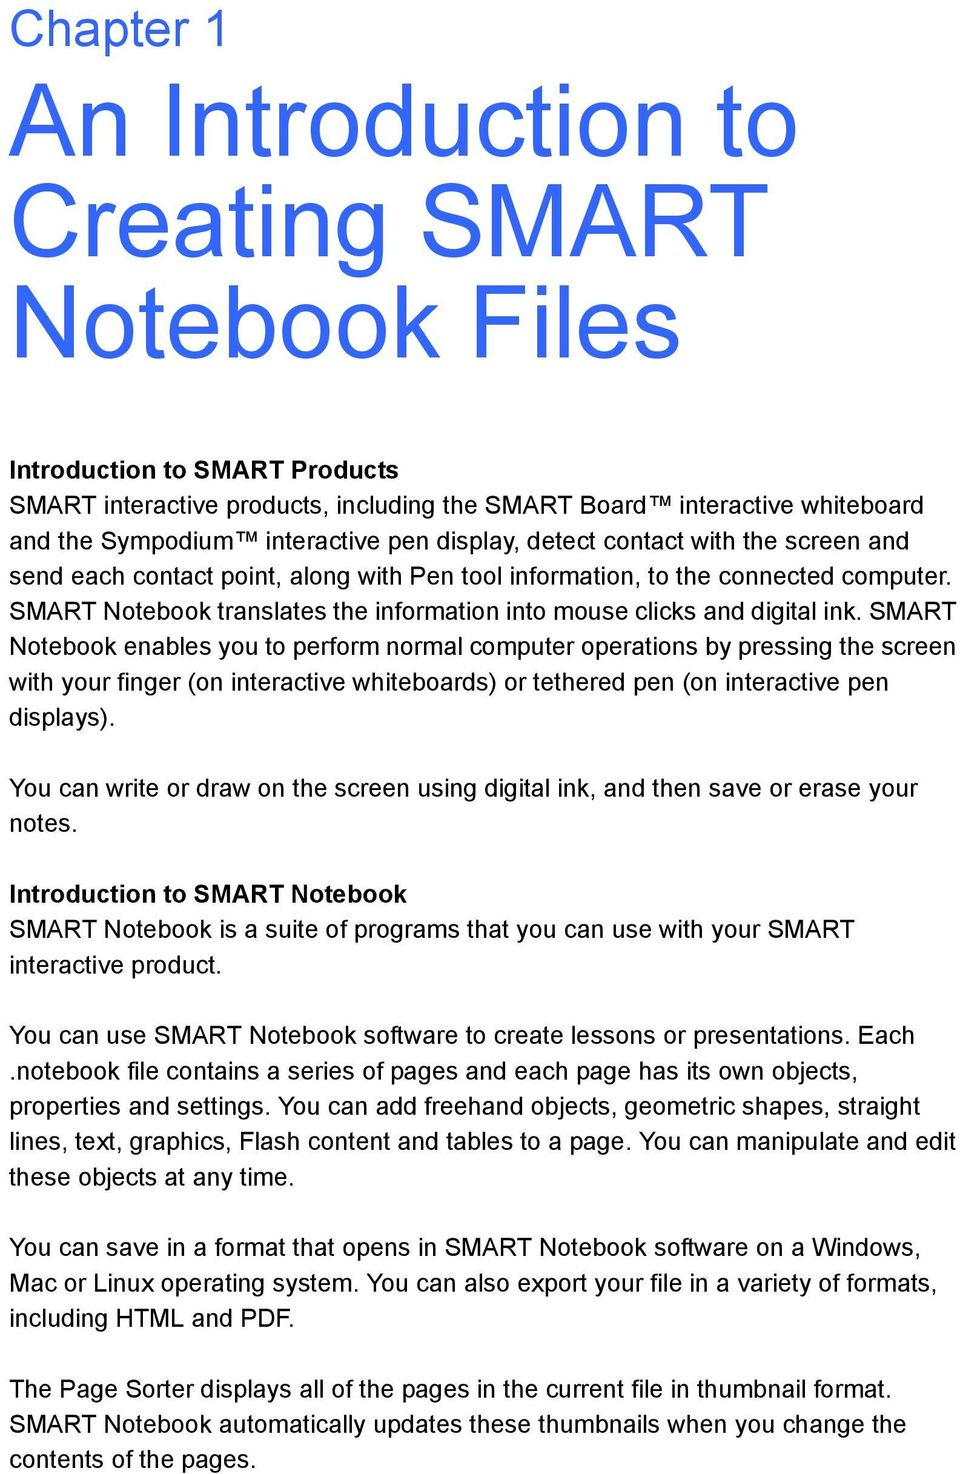 SMART Notebook 10 Software for Mac Computers  Creating SMART